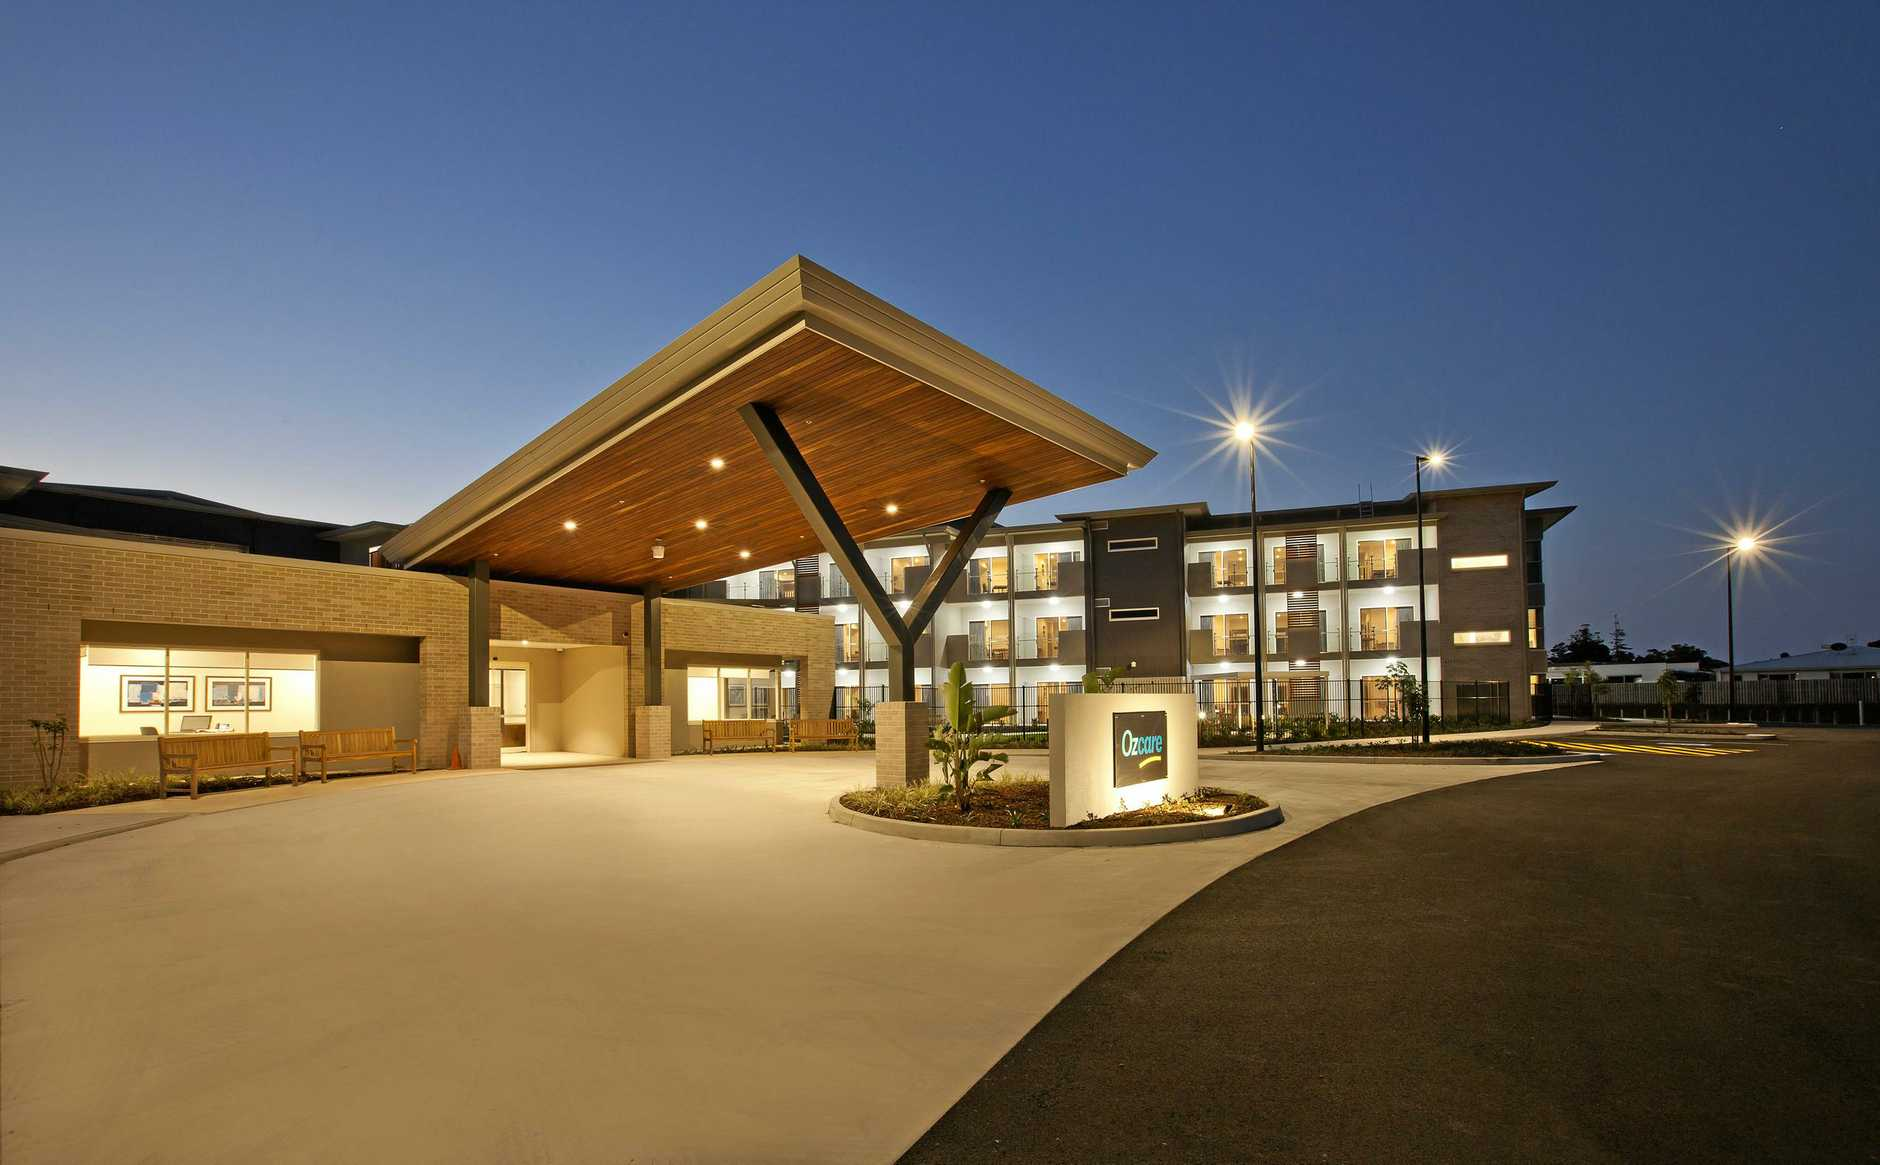 TOP AWARD: Woollam Constructions won the Community Accommodation for Aged Care and Nursing Homes at the Master Builders Queensland awards, for the Ozcare Aged Care Centre in Hervey Bay.